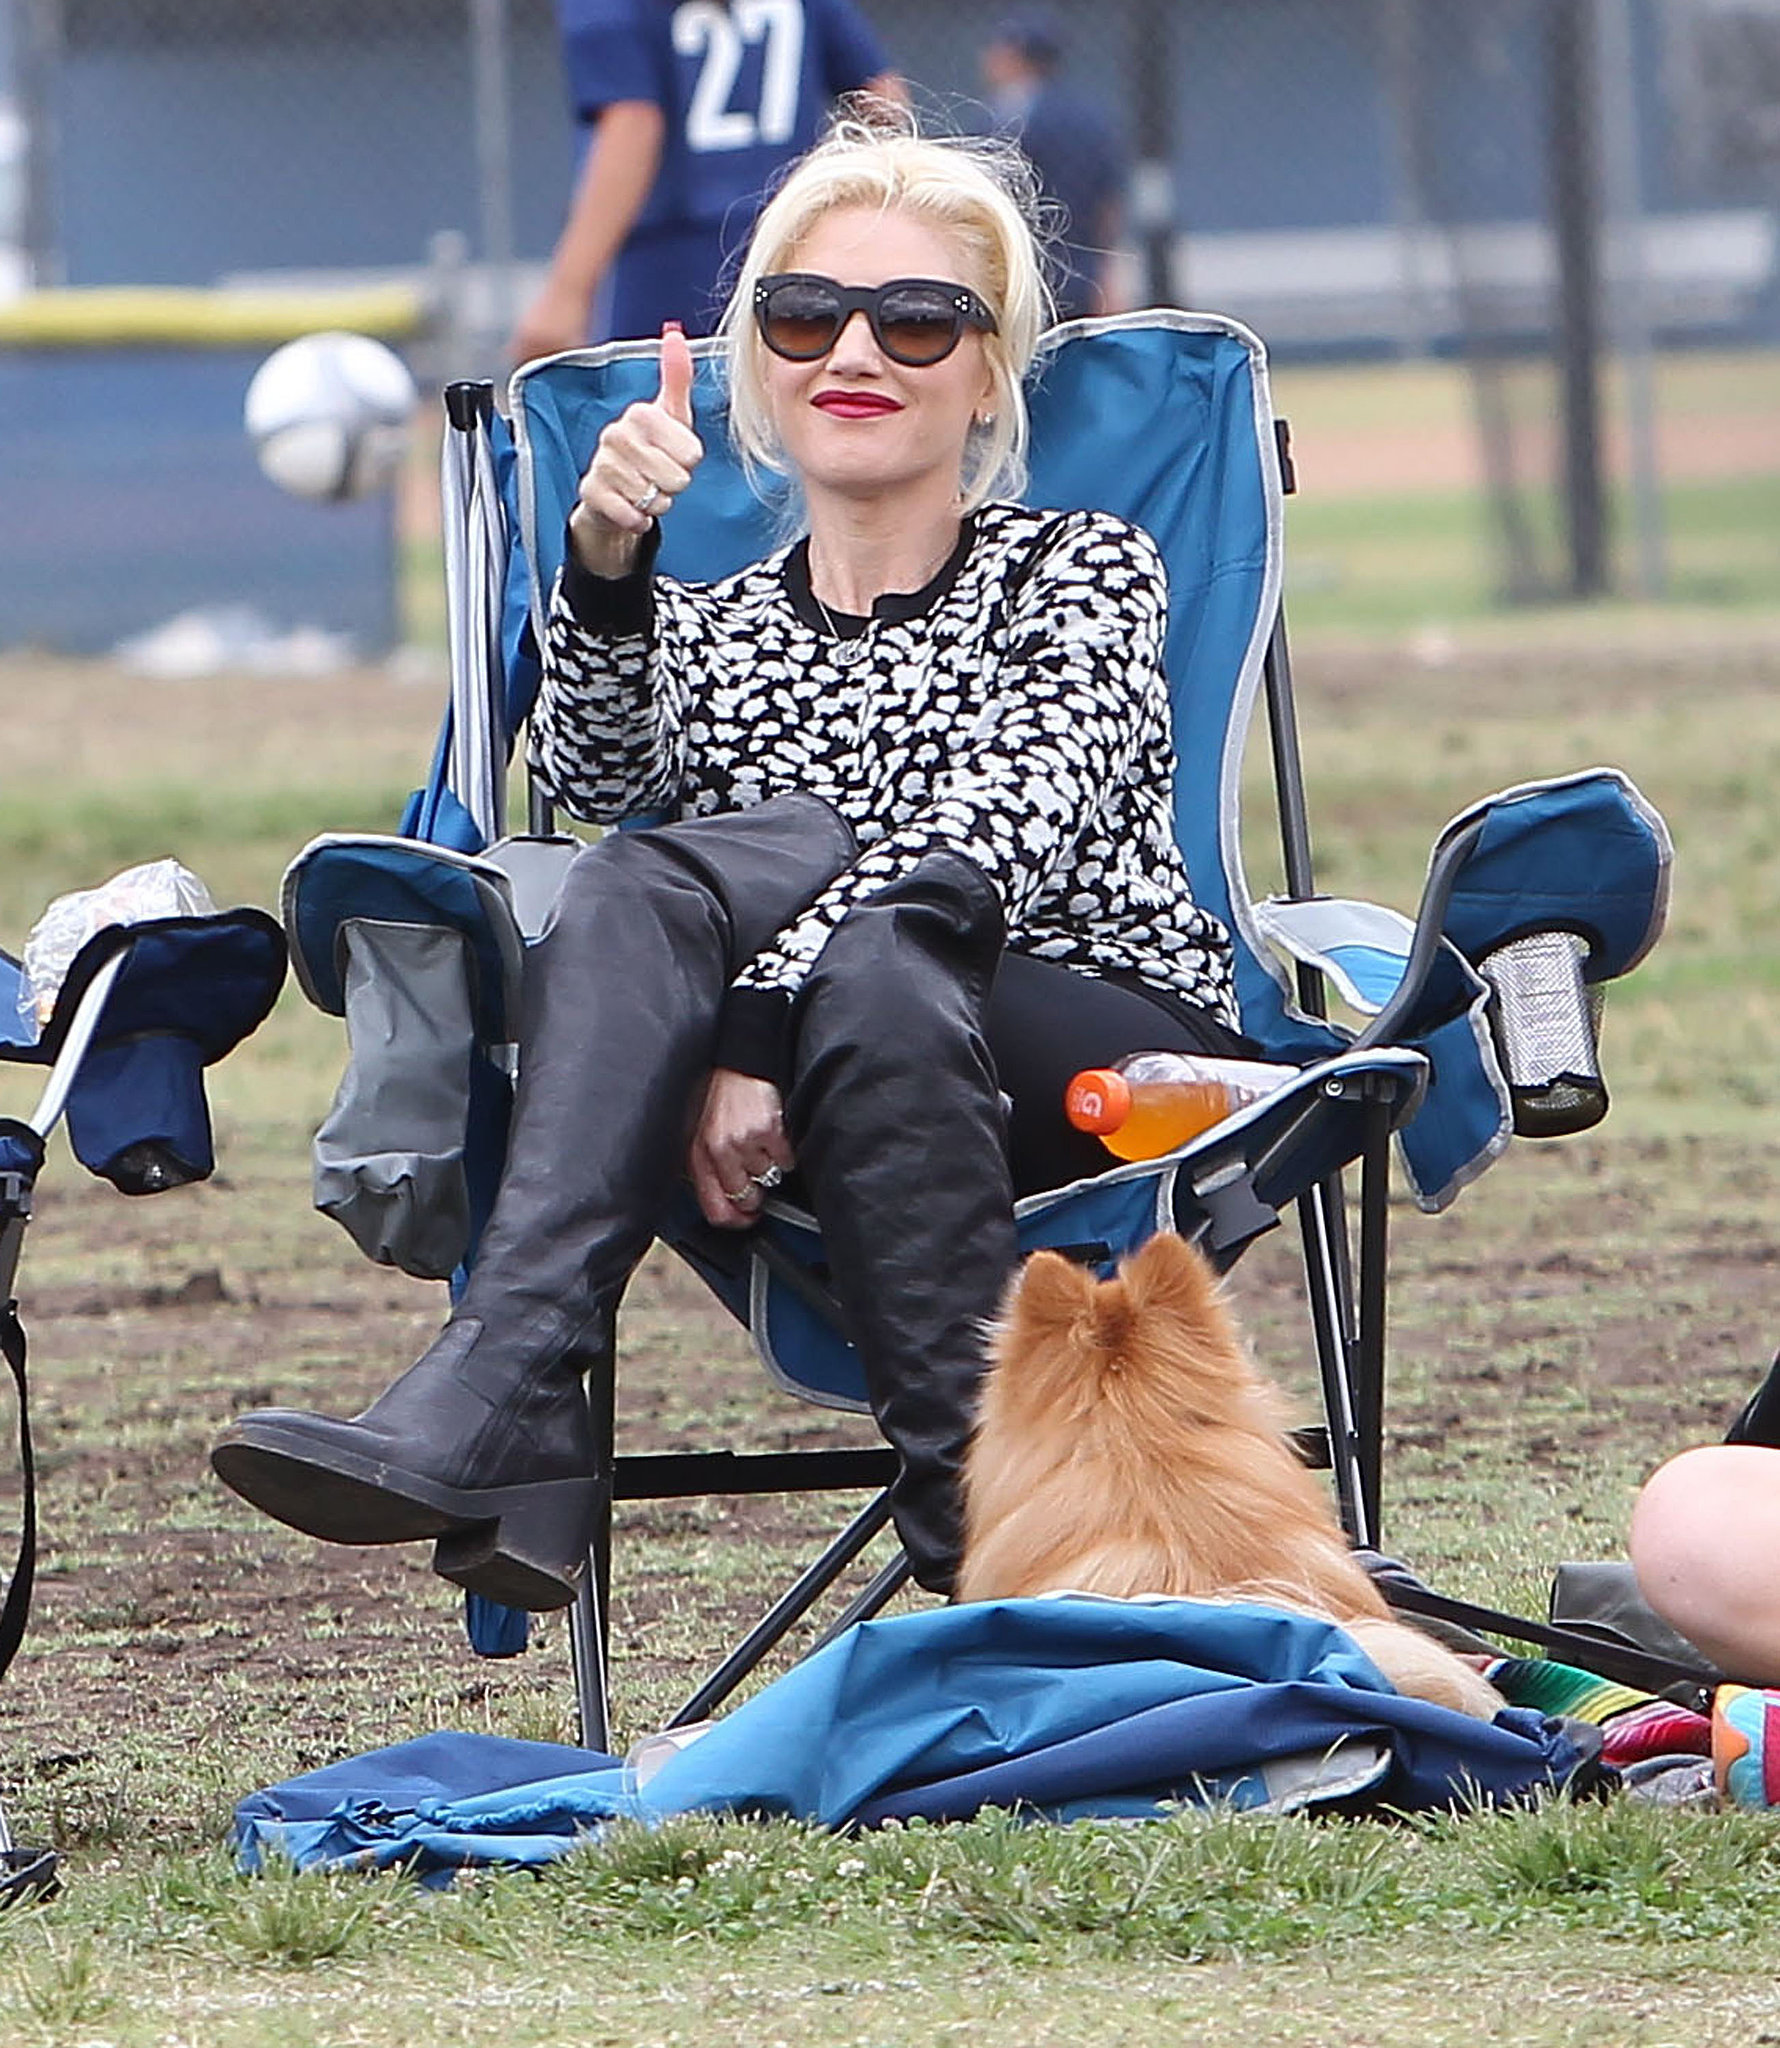 Gwen Stefani gave a thumbs-up to her son Kingston Rossdale.